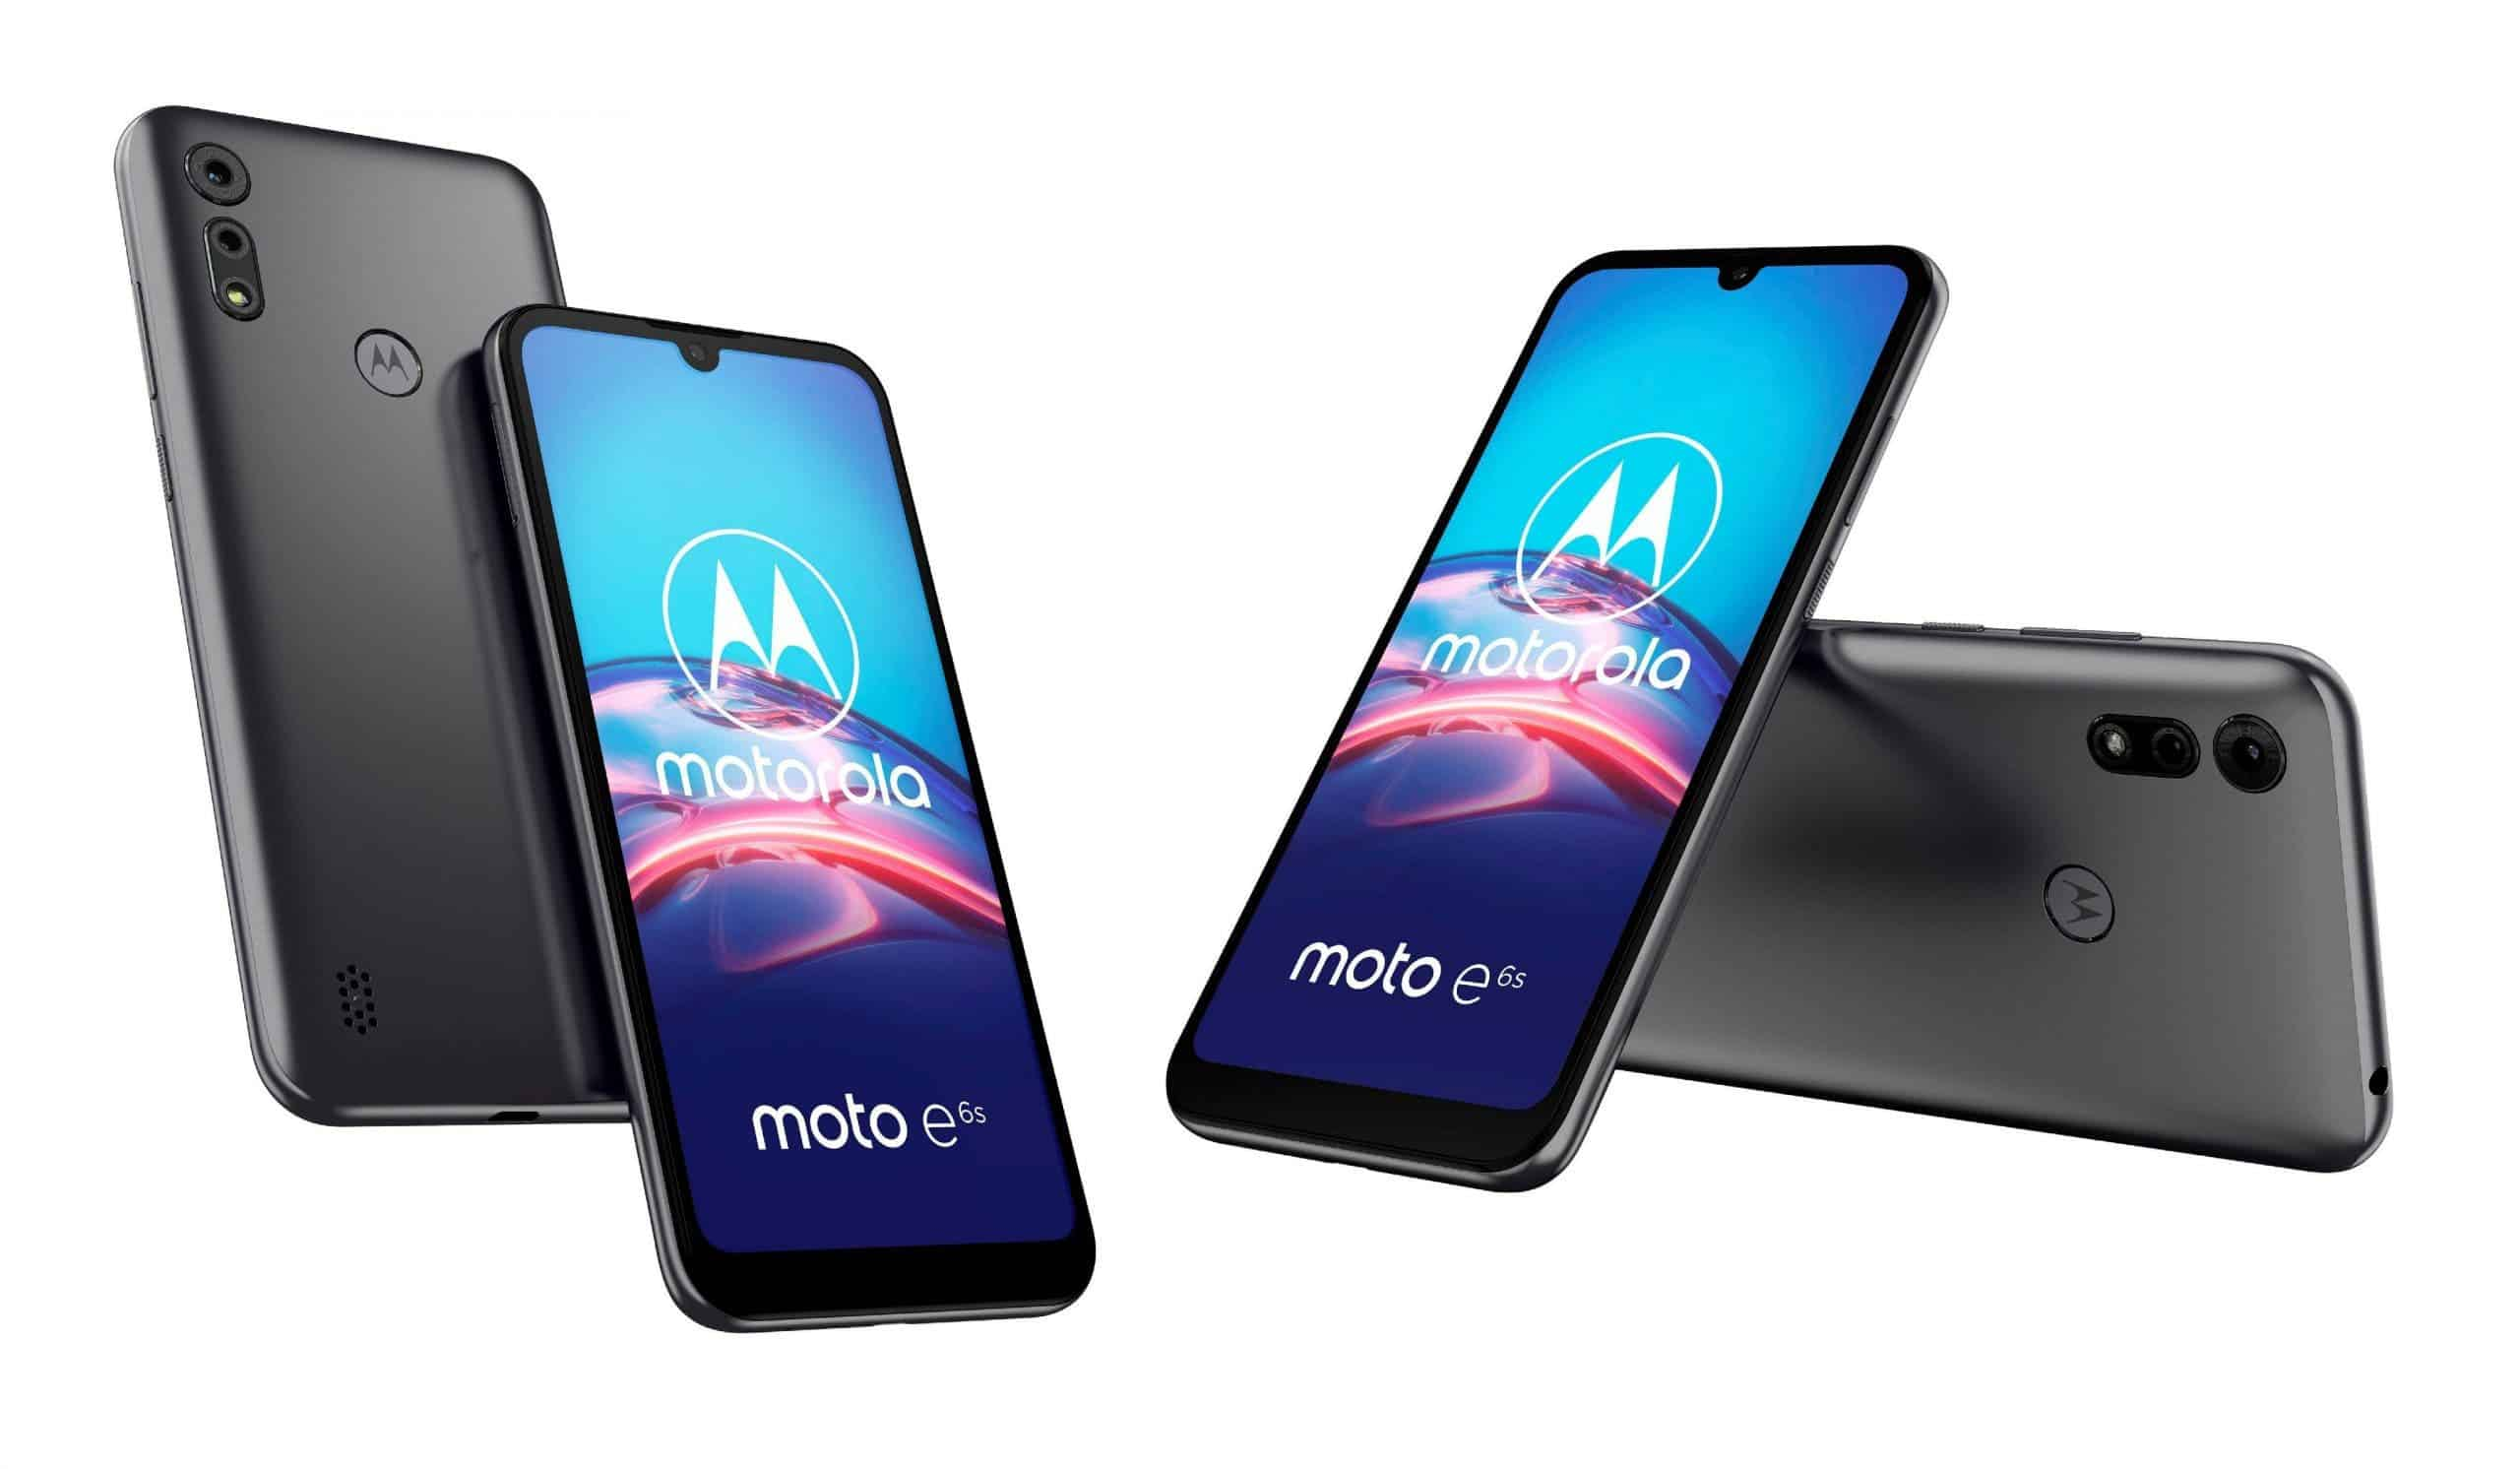 Remove term: Motorola MotorolaRemove term: Moto MotoRemove term: Moto E6s Moto E6sRemove term: Motorola E6s Grey Motorola E6s GreyRemove term: Motorola E6s 2020 Motorola E6s 2020Remove term: Moto E6s 2020 grey Moto E6s 2020 grey